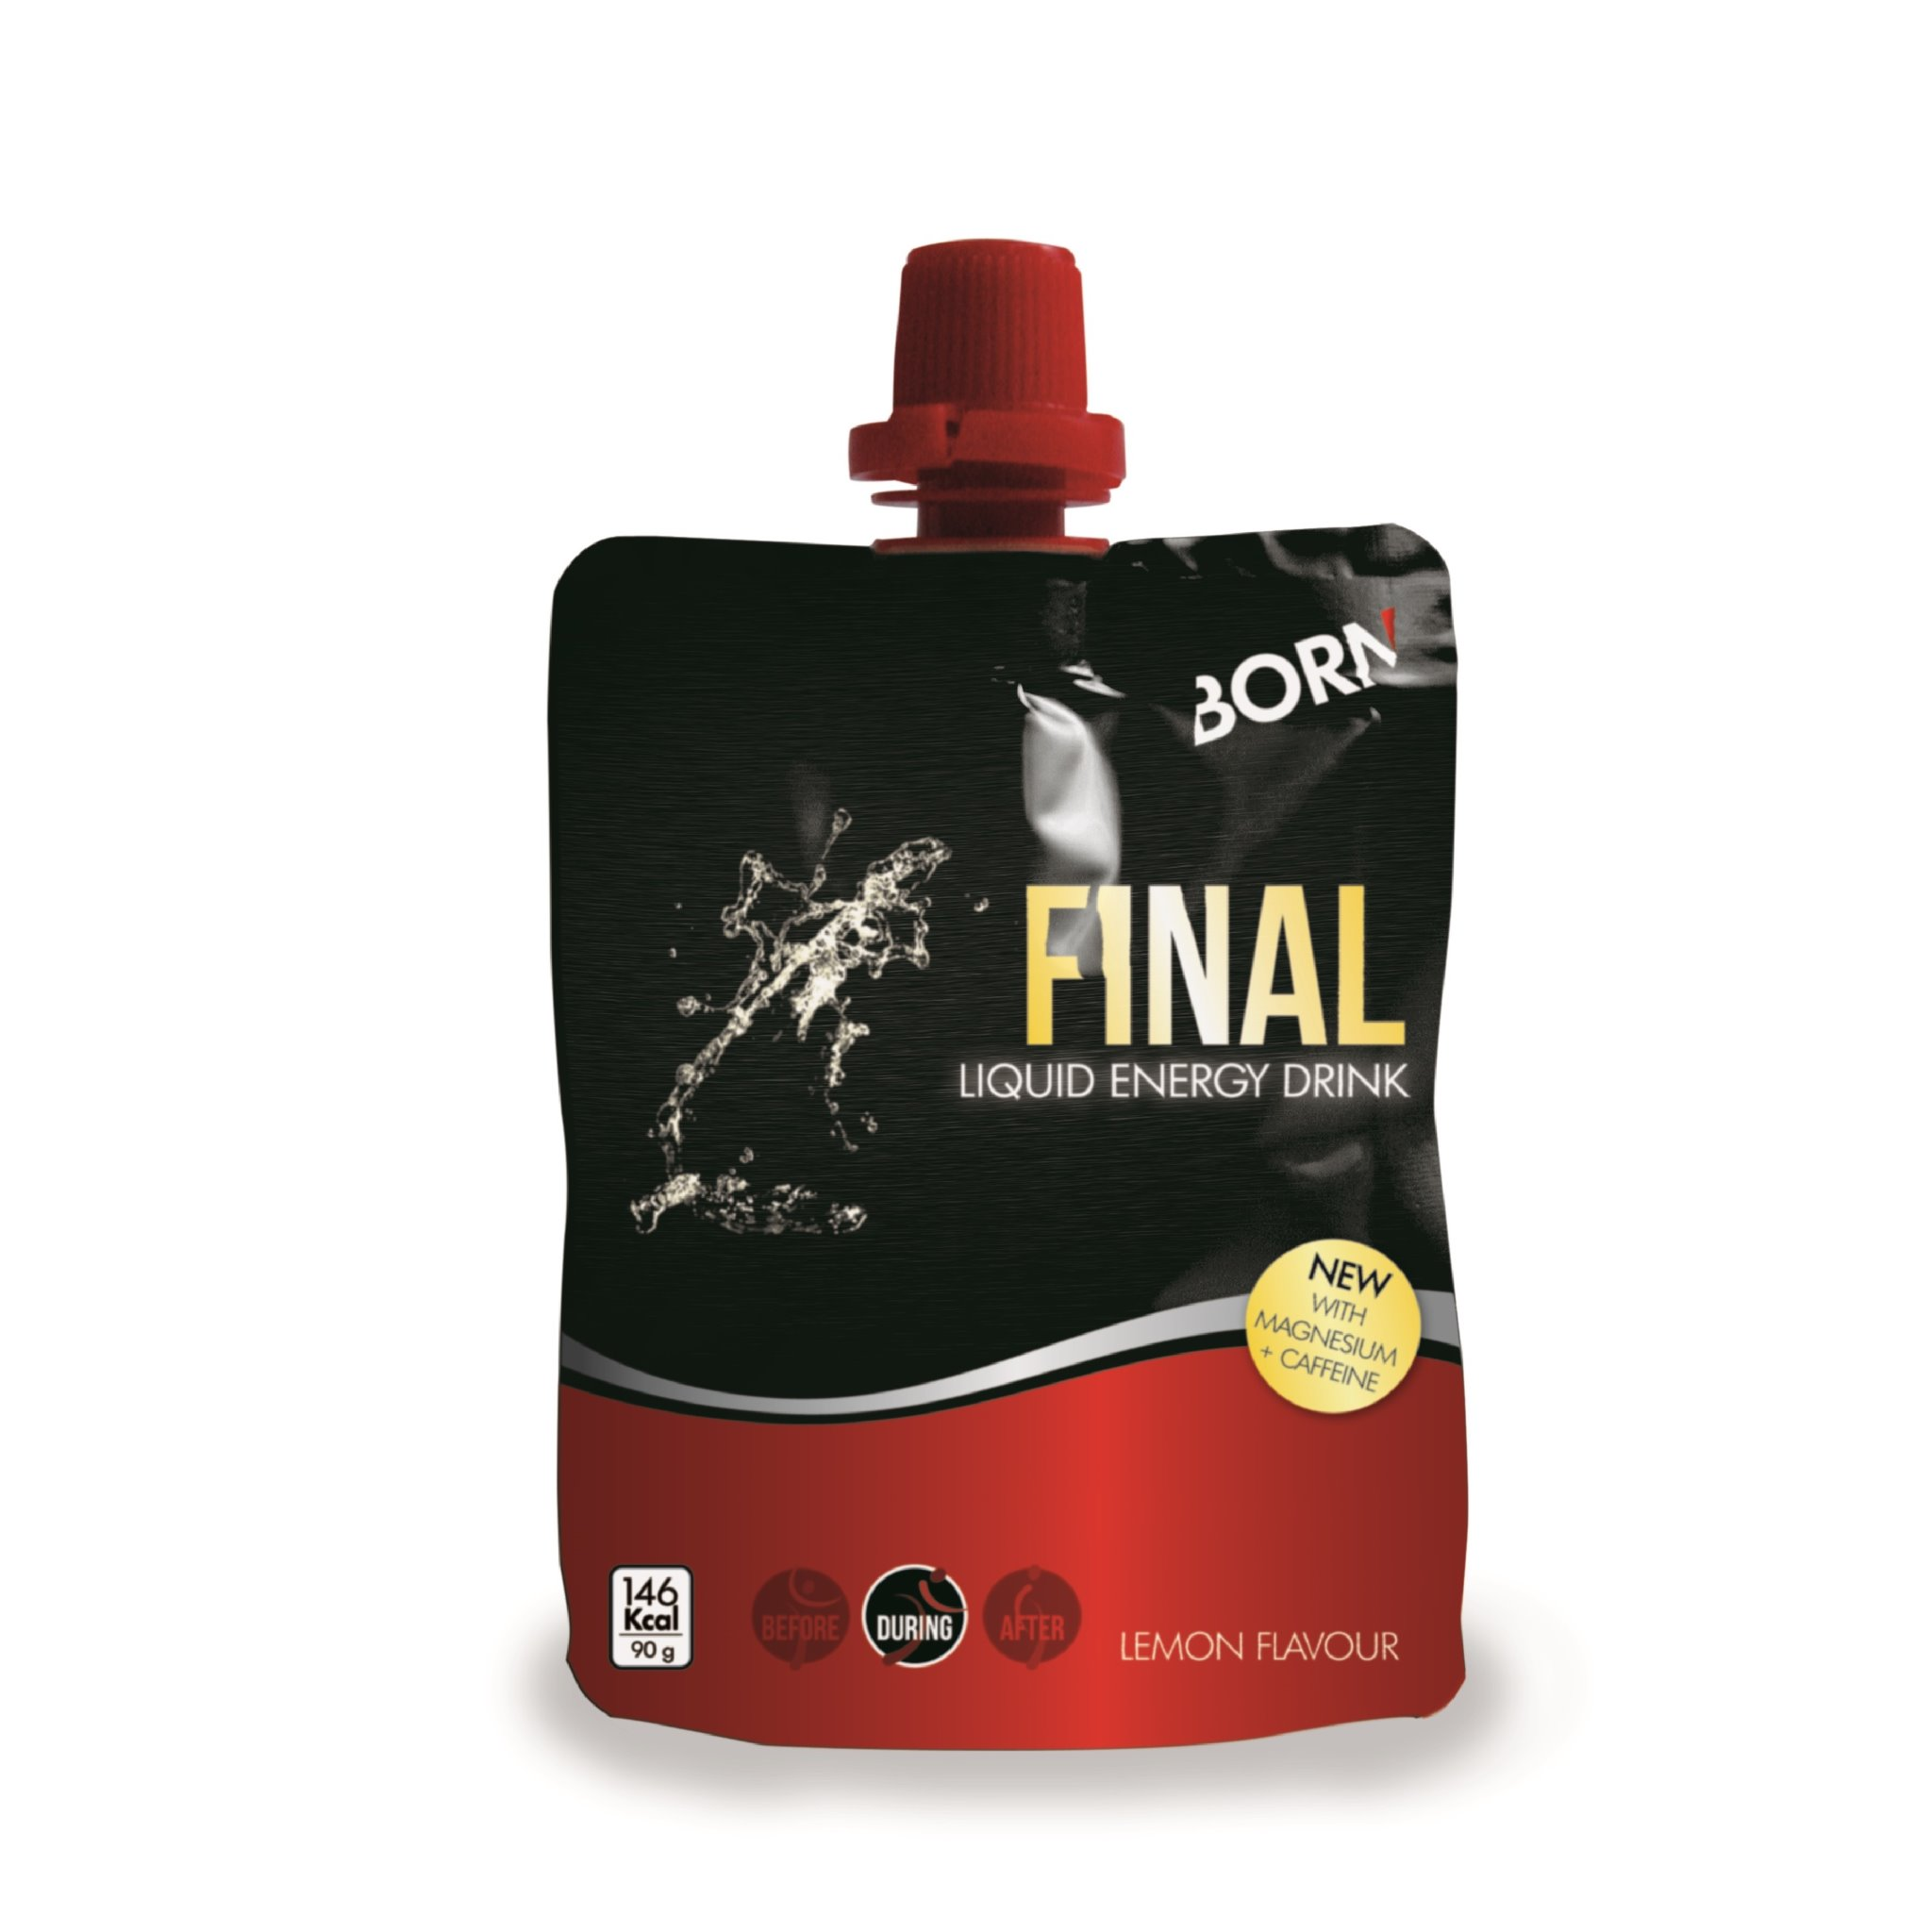 BORN Final (90g - Liquid Energy Drink)